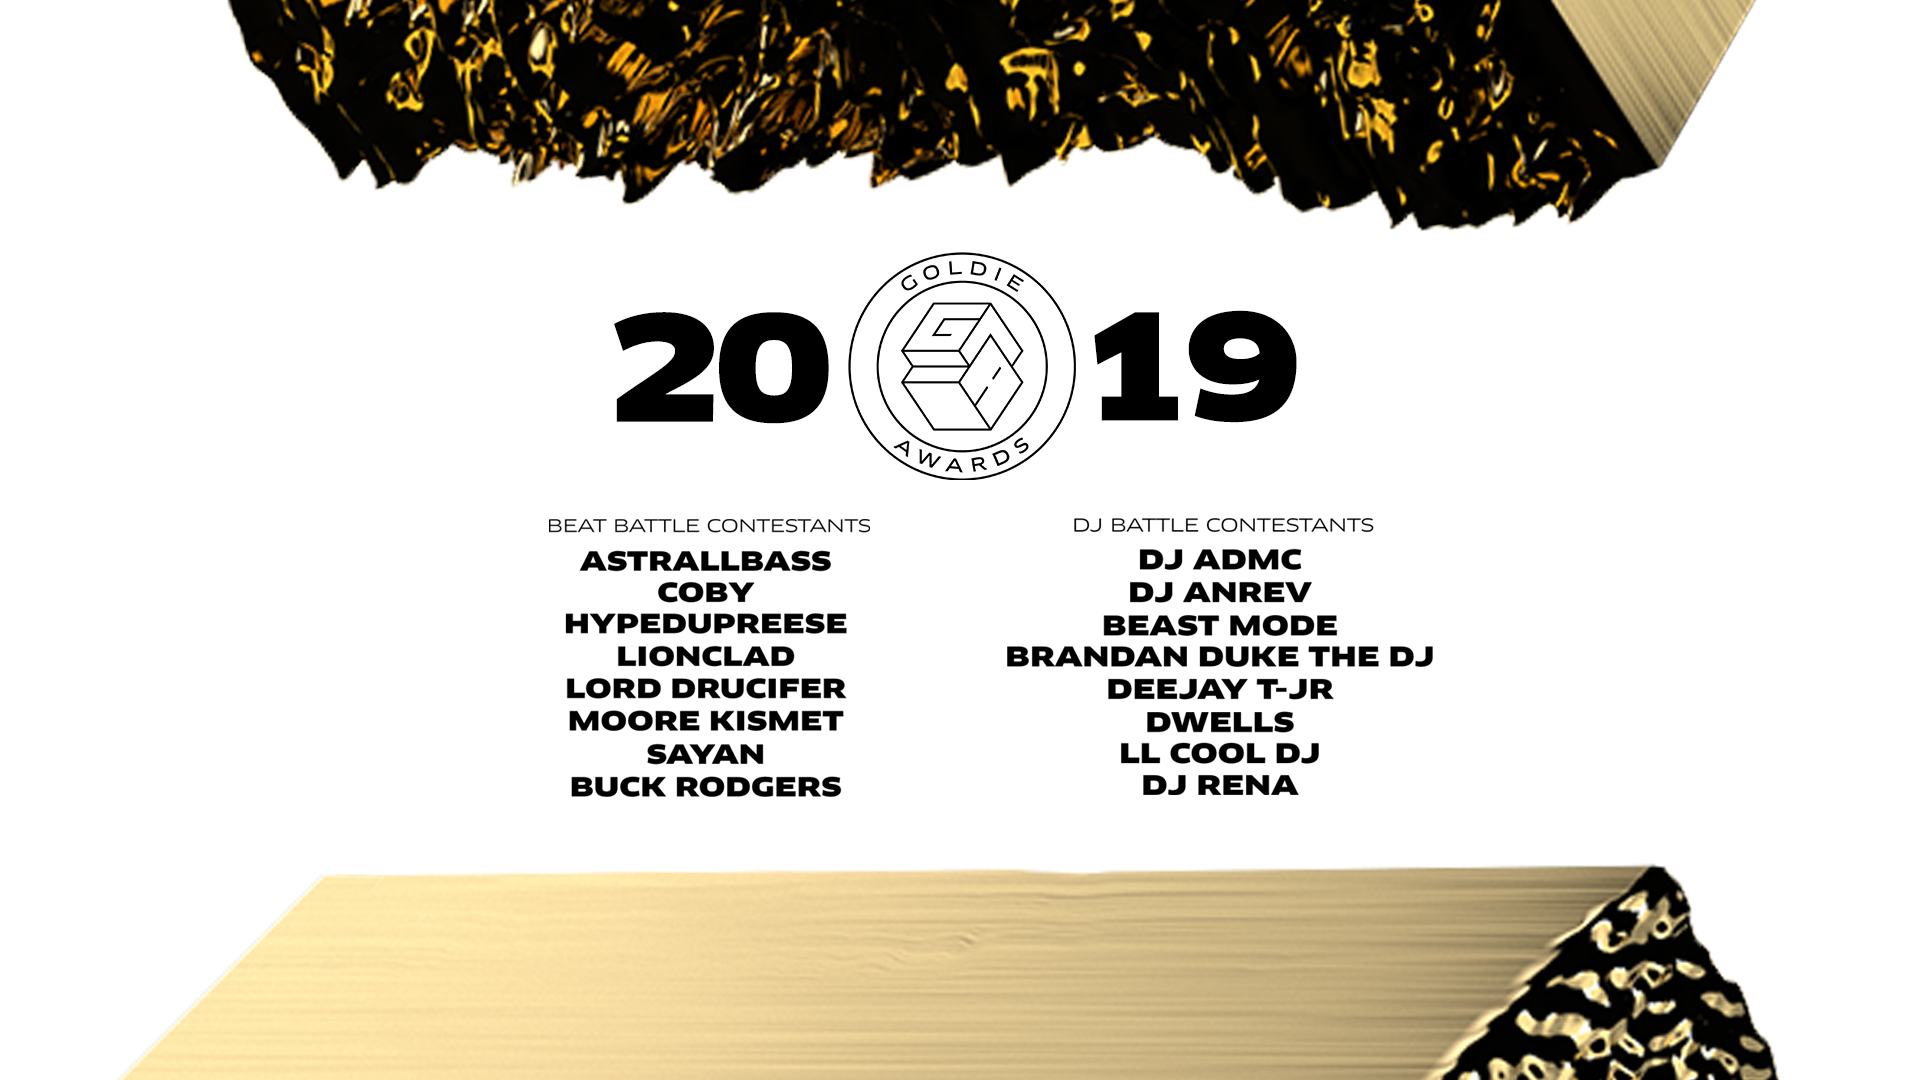 DJ Battle & Beat Battle Contestants Announced for A-Trak's 3rd Annual Goldie Awards